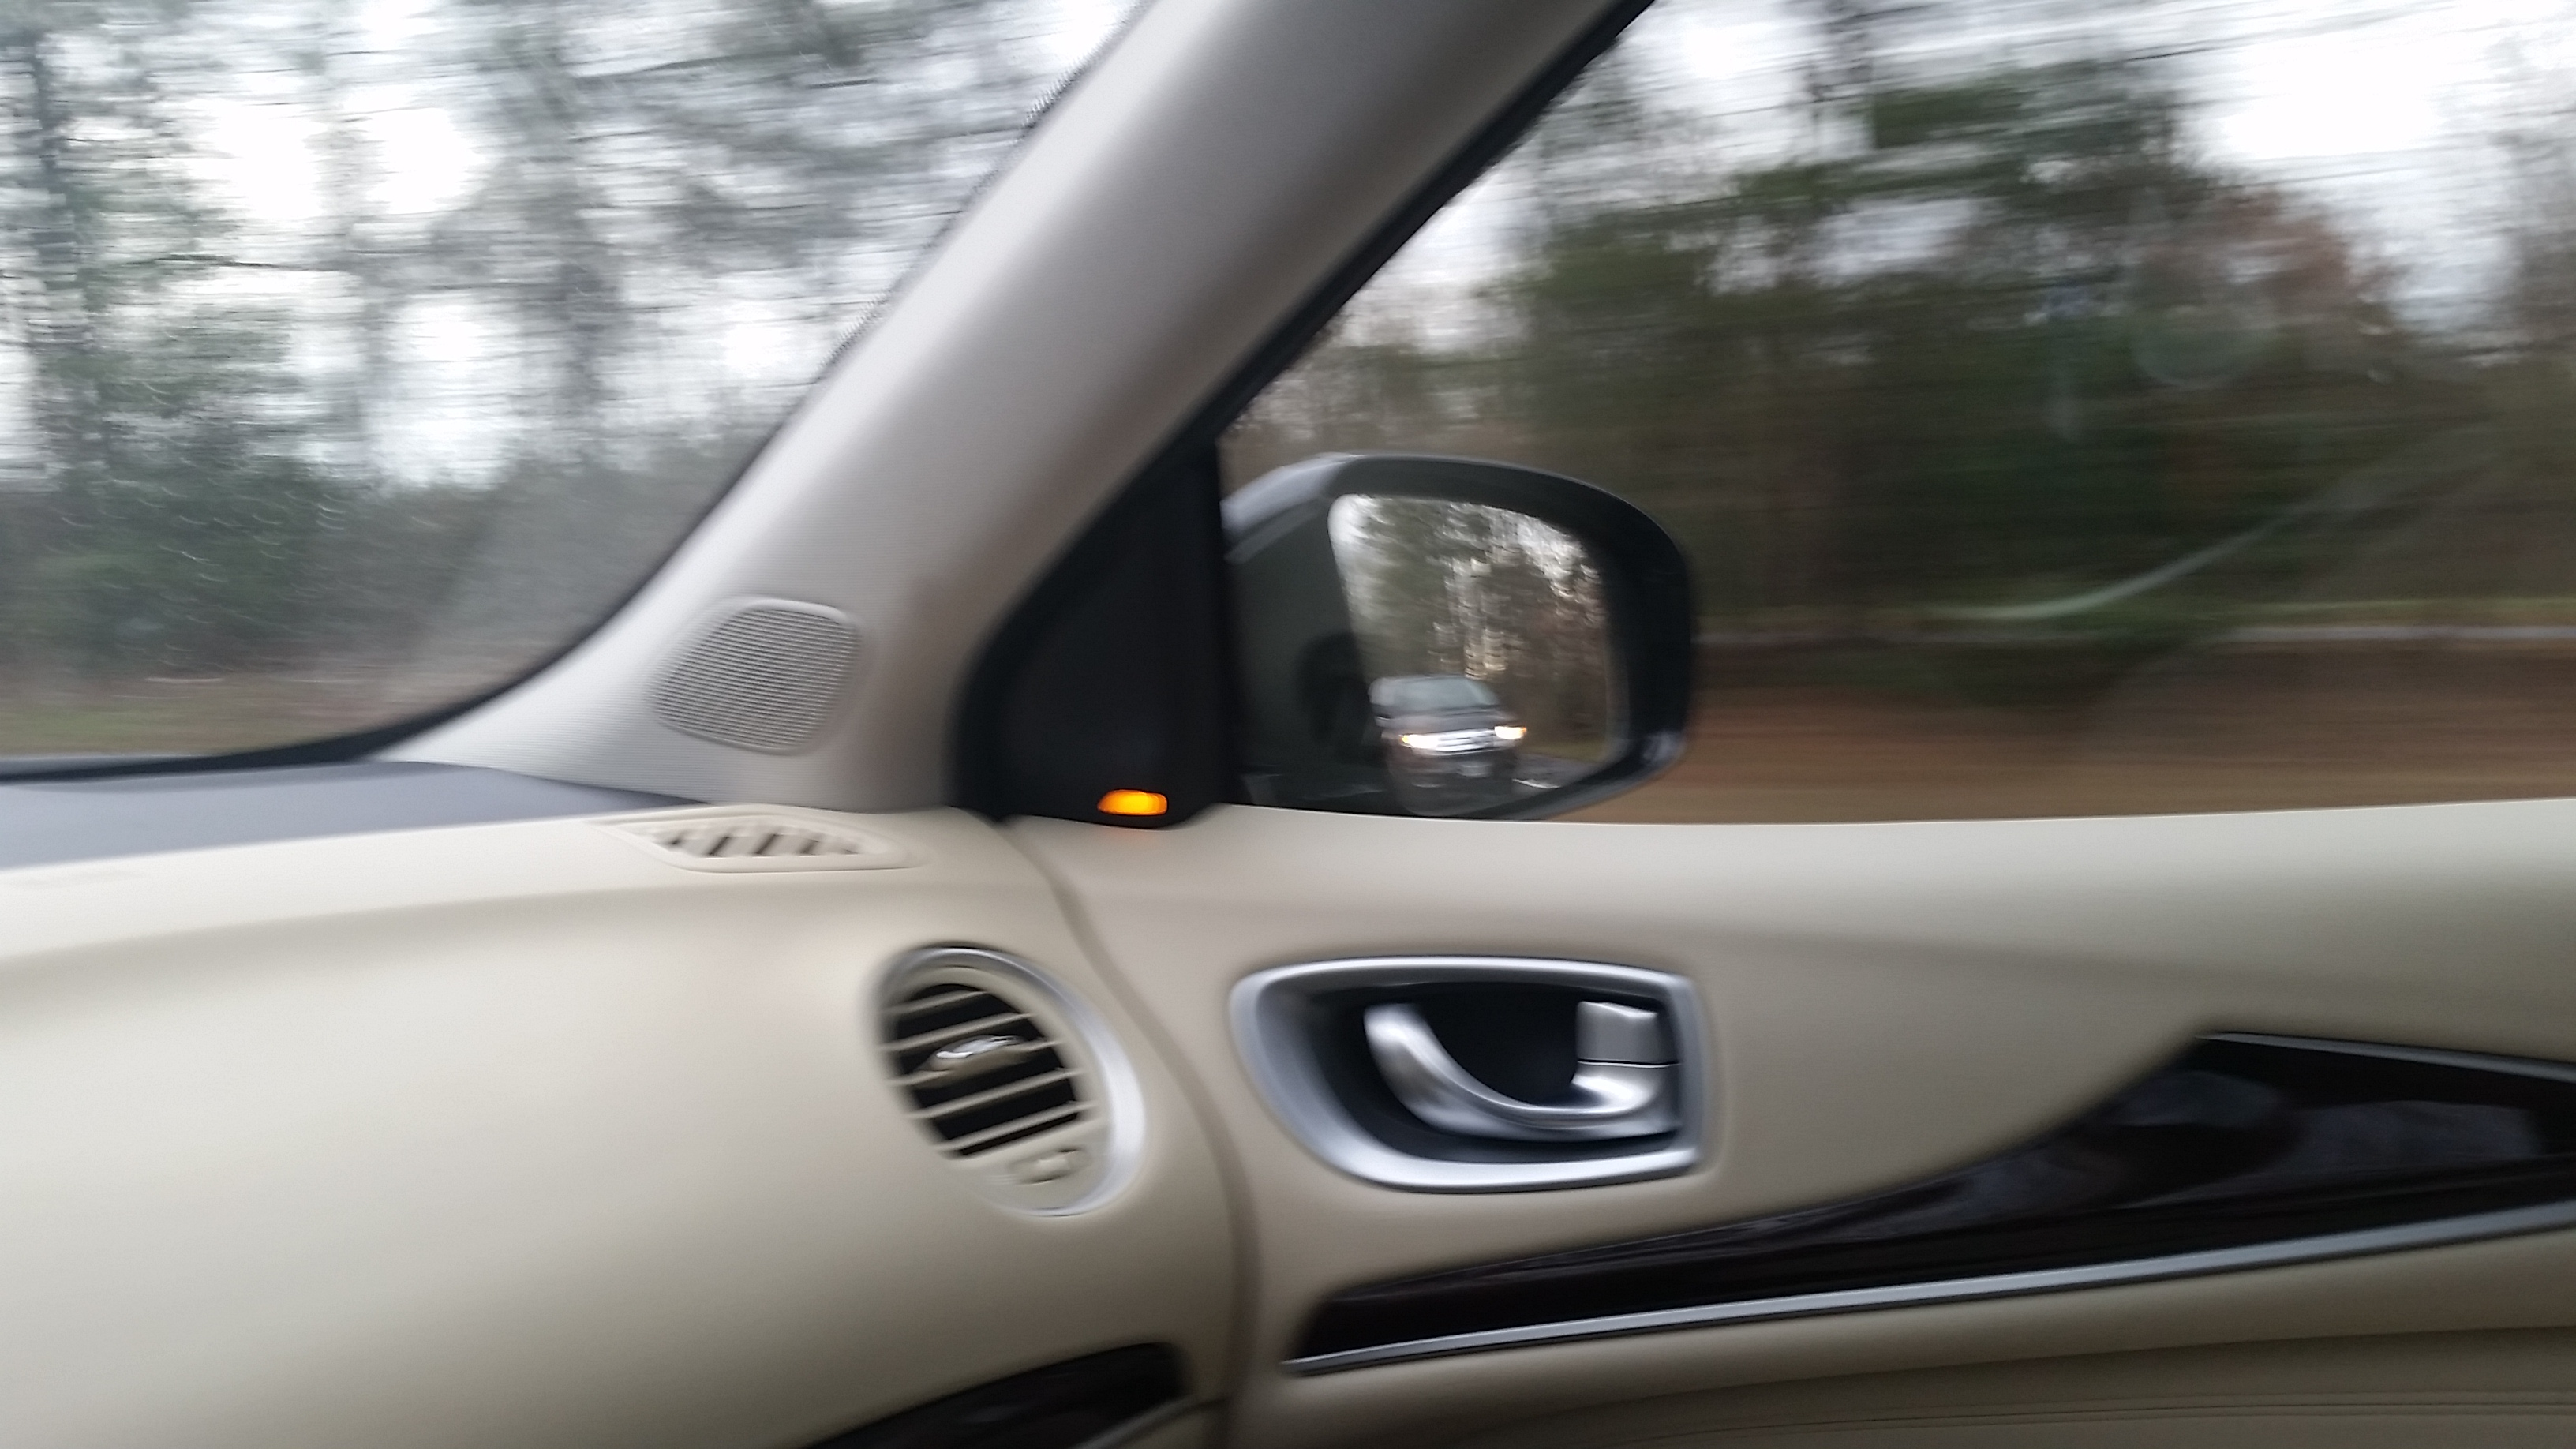 Infiniti's Active Safety Display features Blind Spot Warning light on each door.